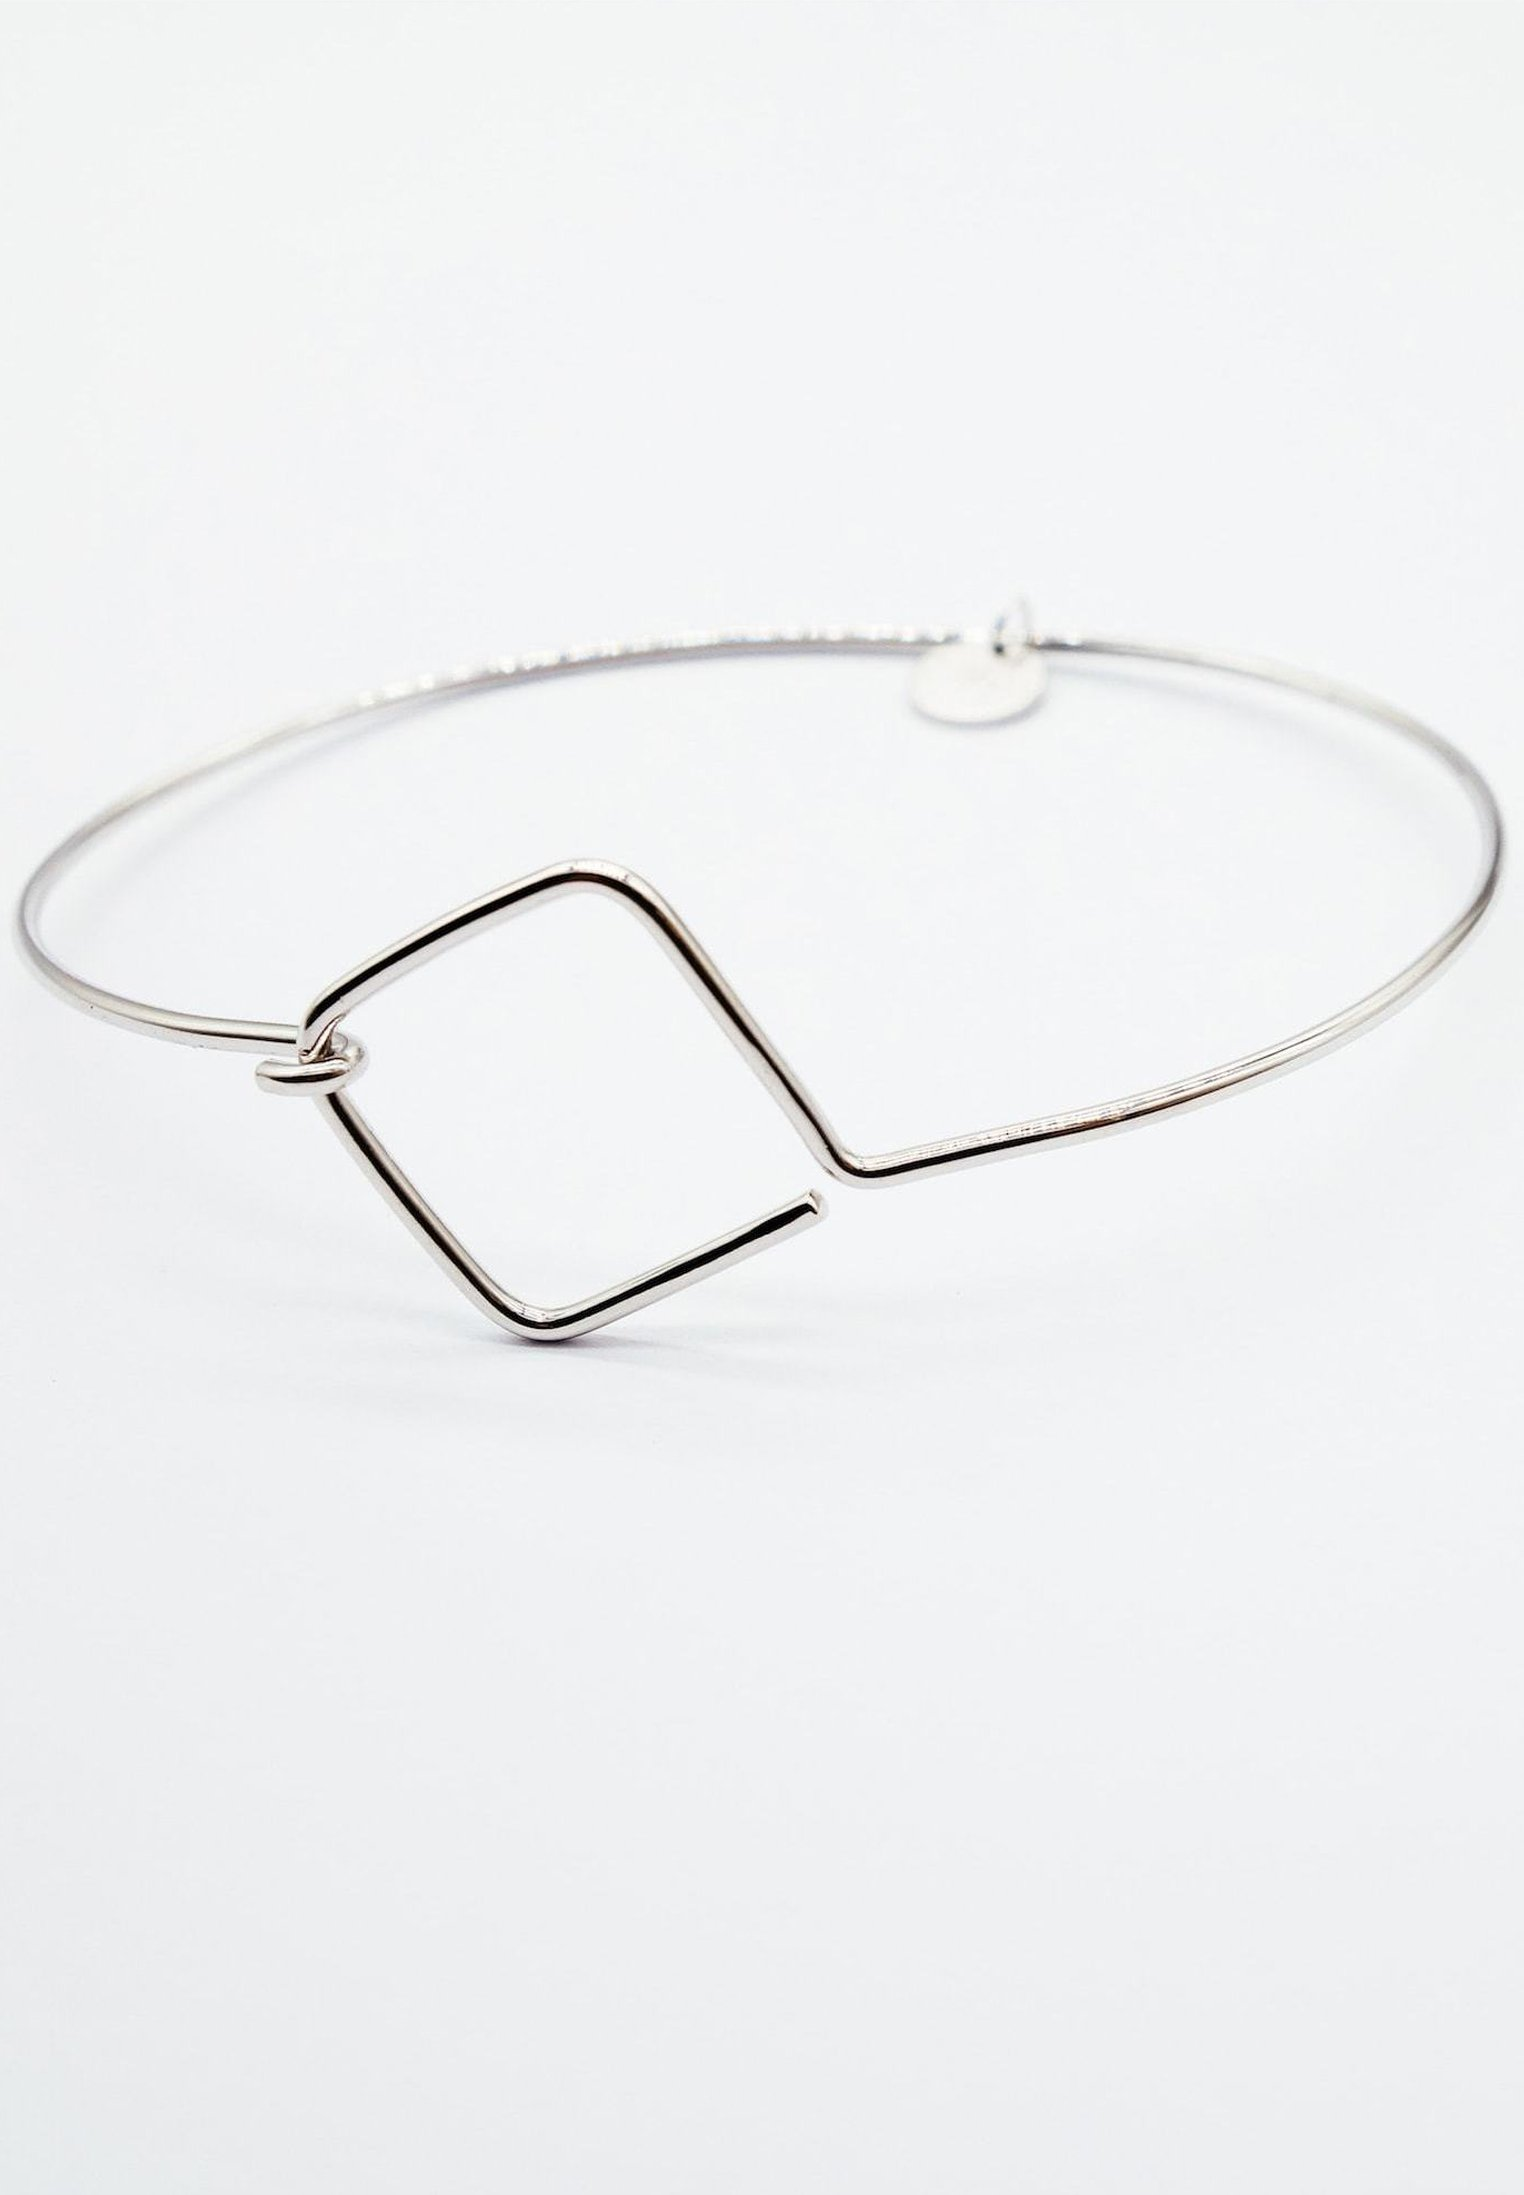 Arion Jewelry Armband - Silber